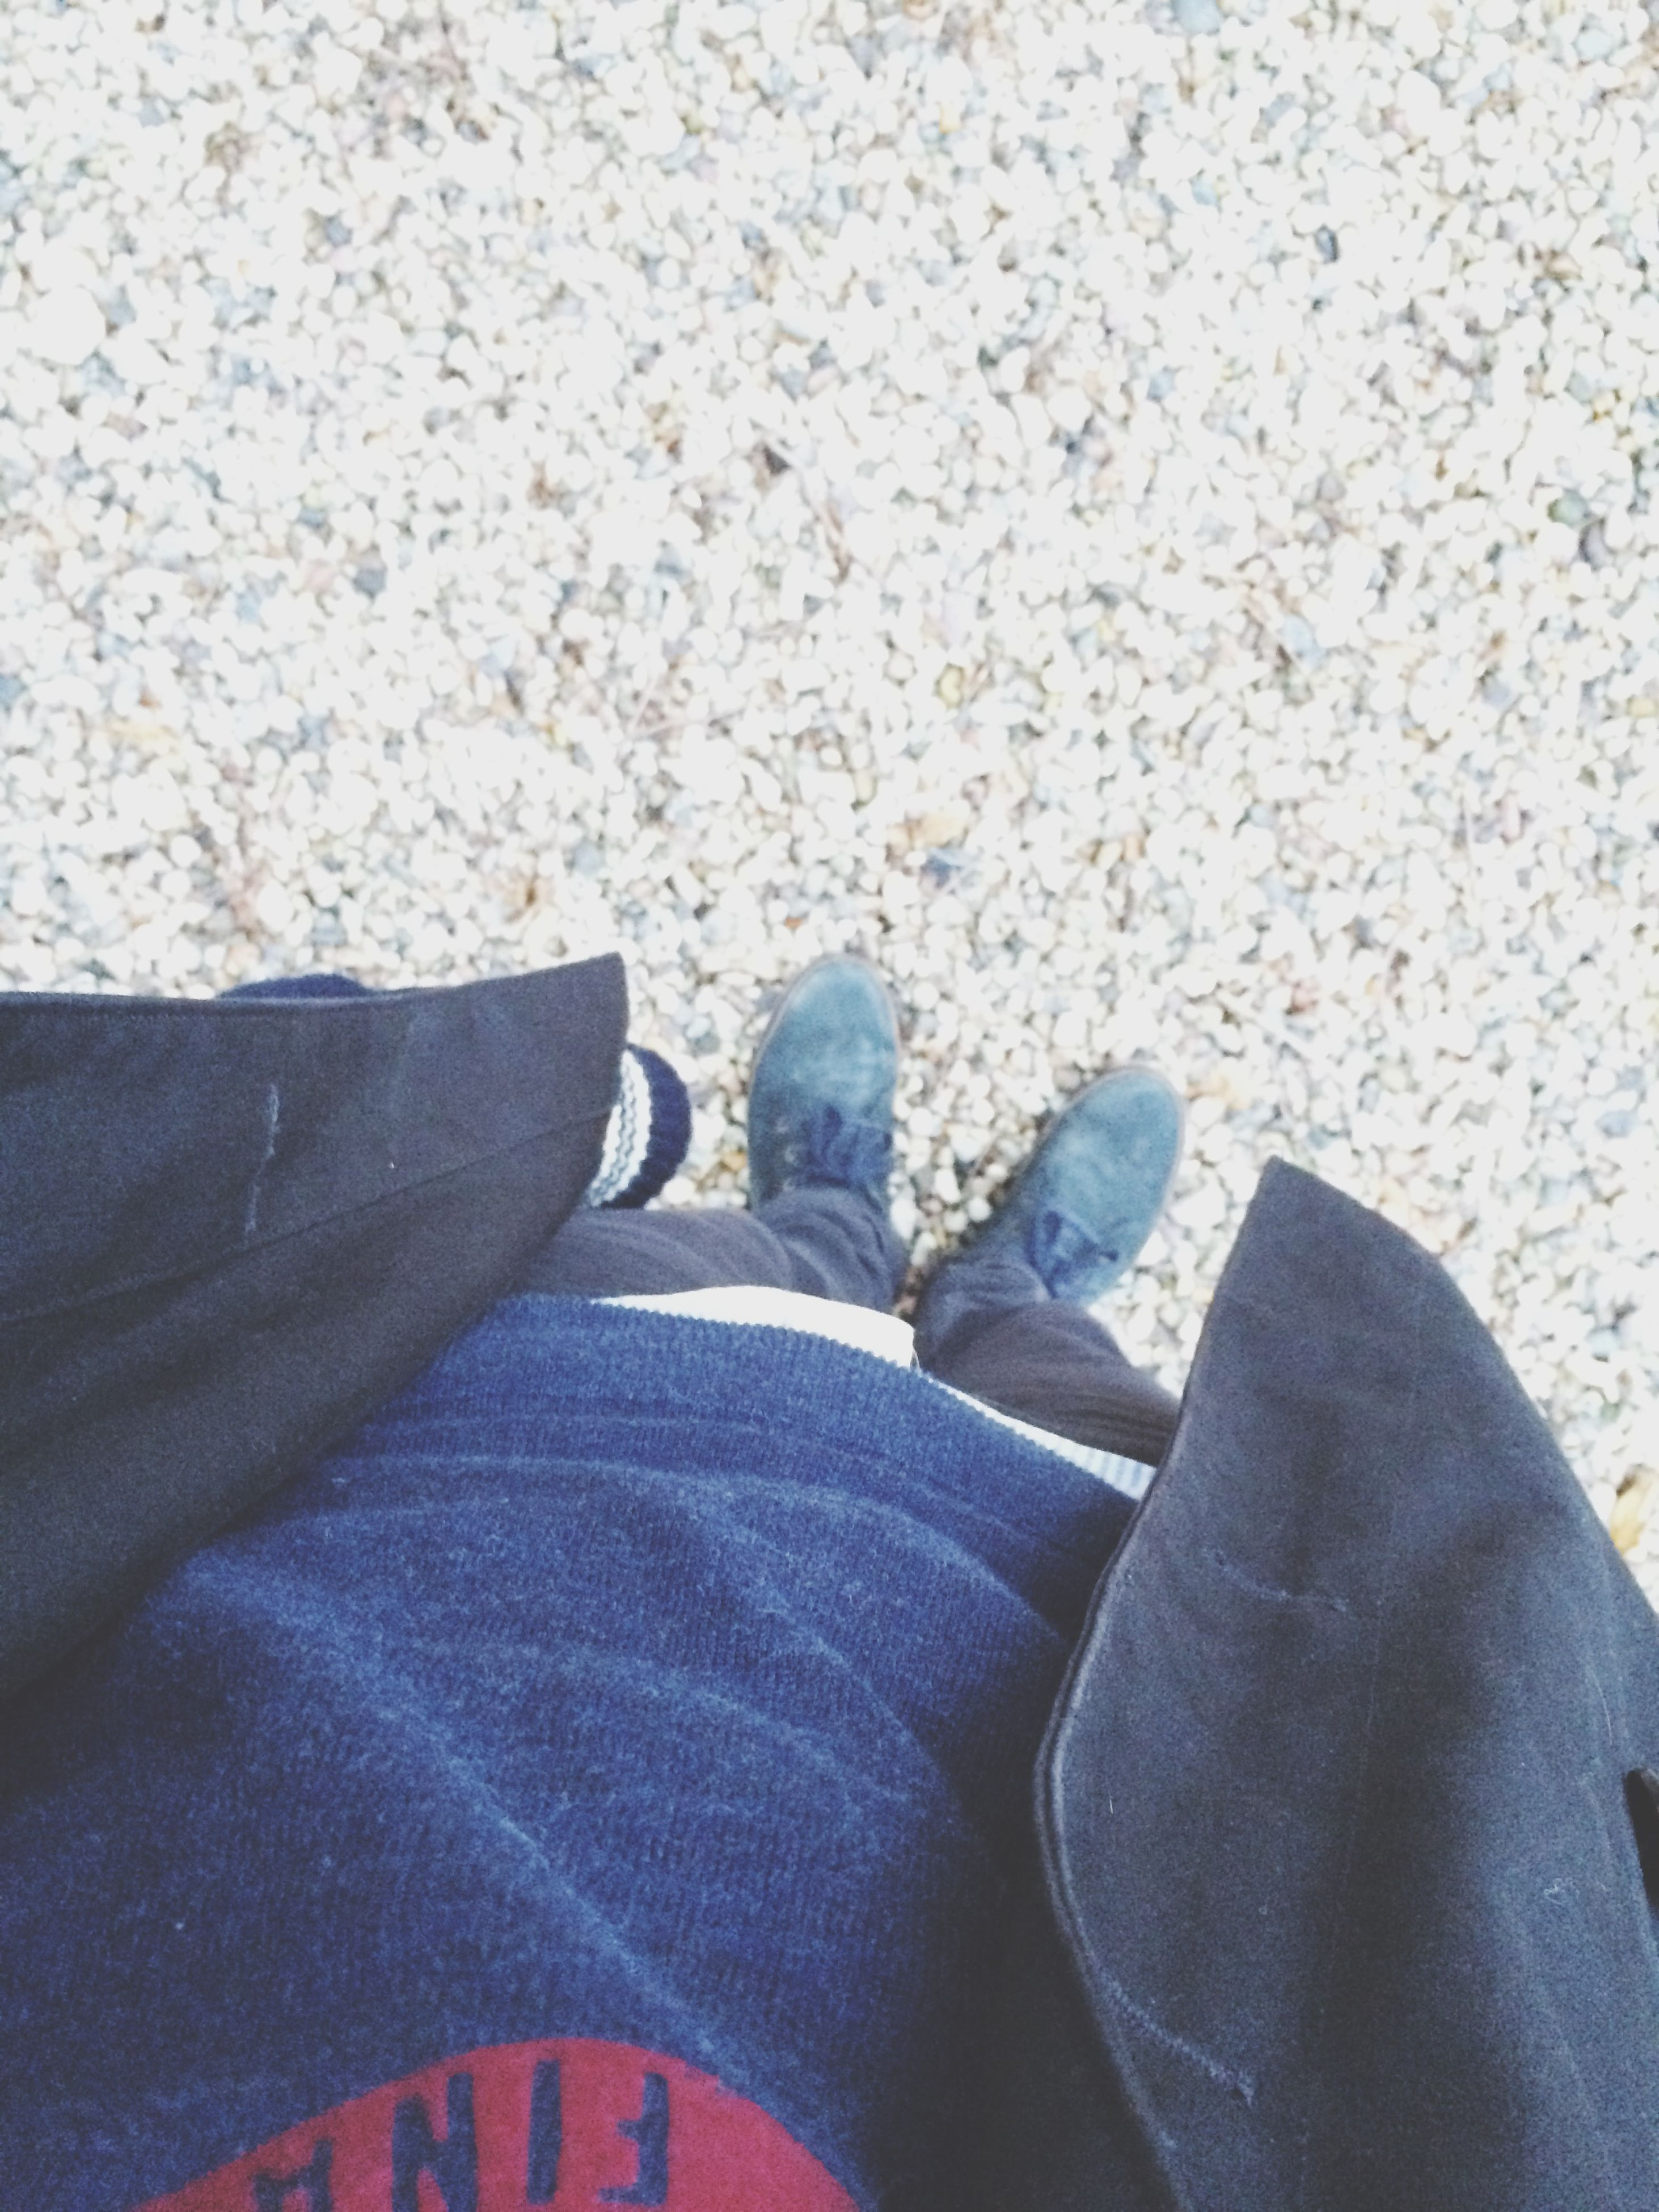 low section, person, shoe, personal perspective, jeans, lifestyles, high angle view, human foot, men, footwear, leisure activity, casual clothing, standing, relaxation, sitting, unrecognizable person, street